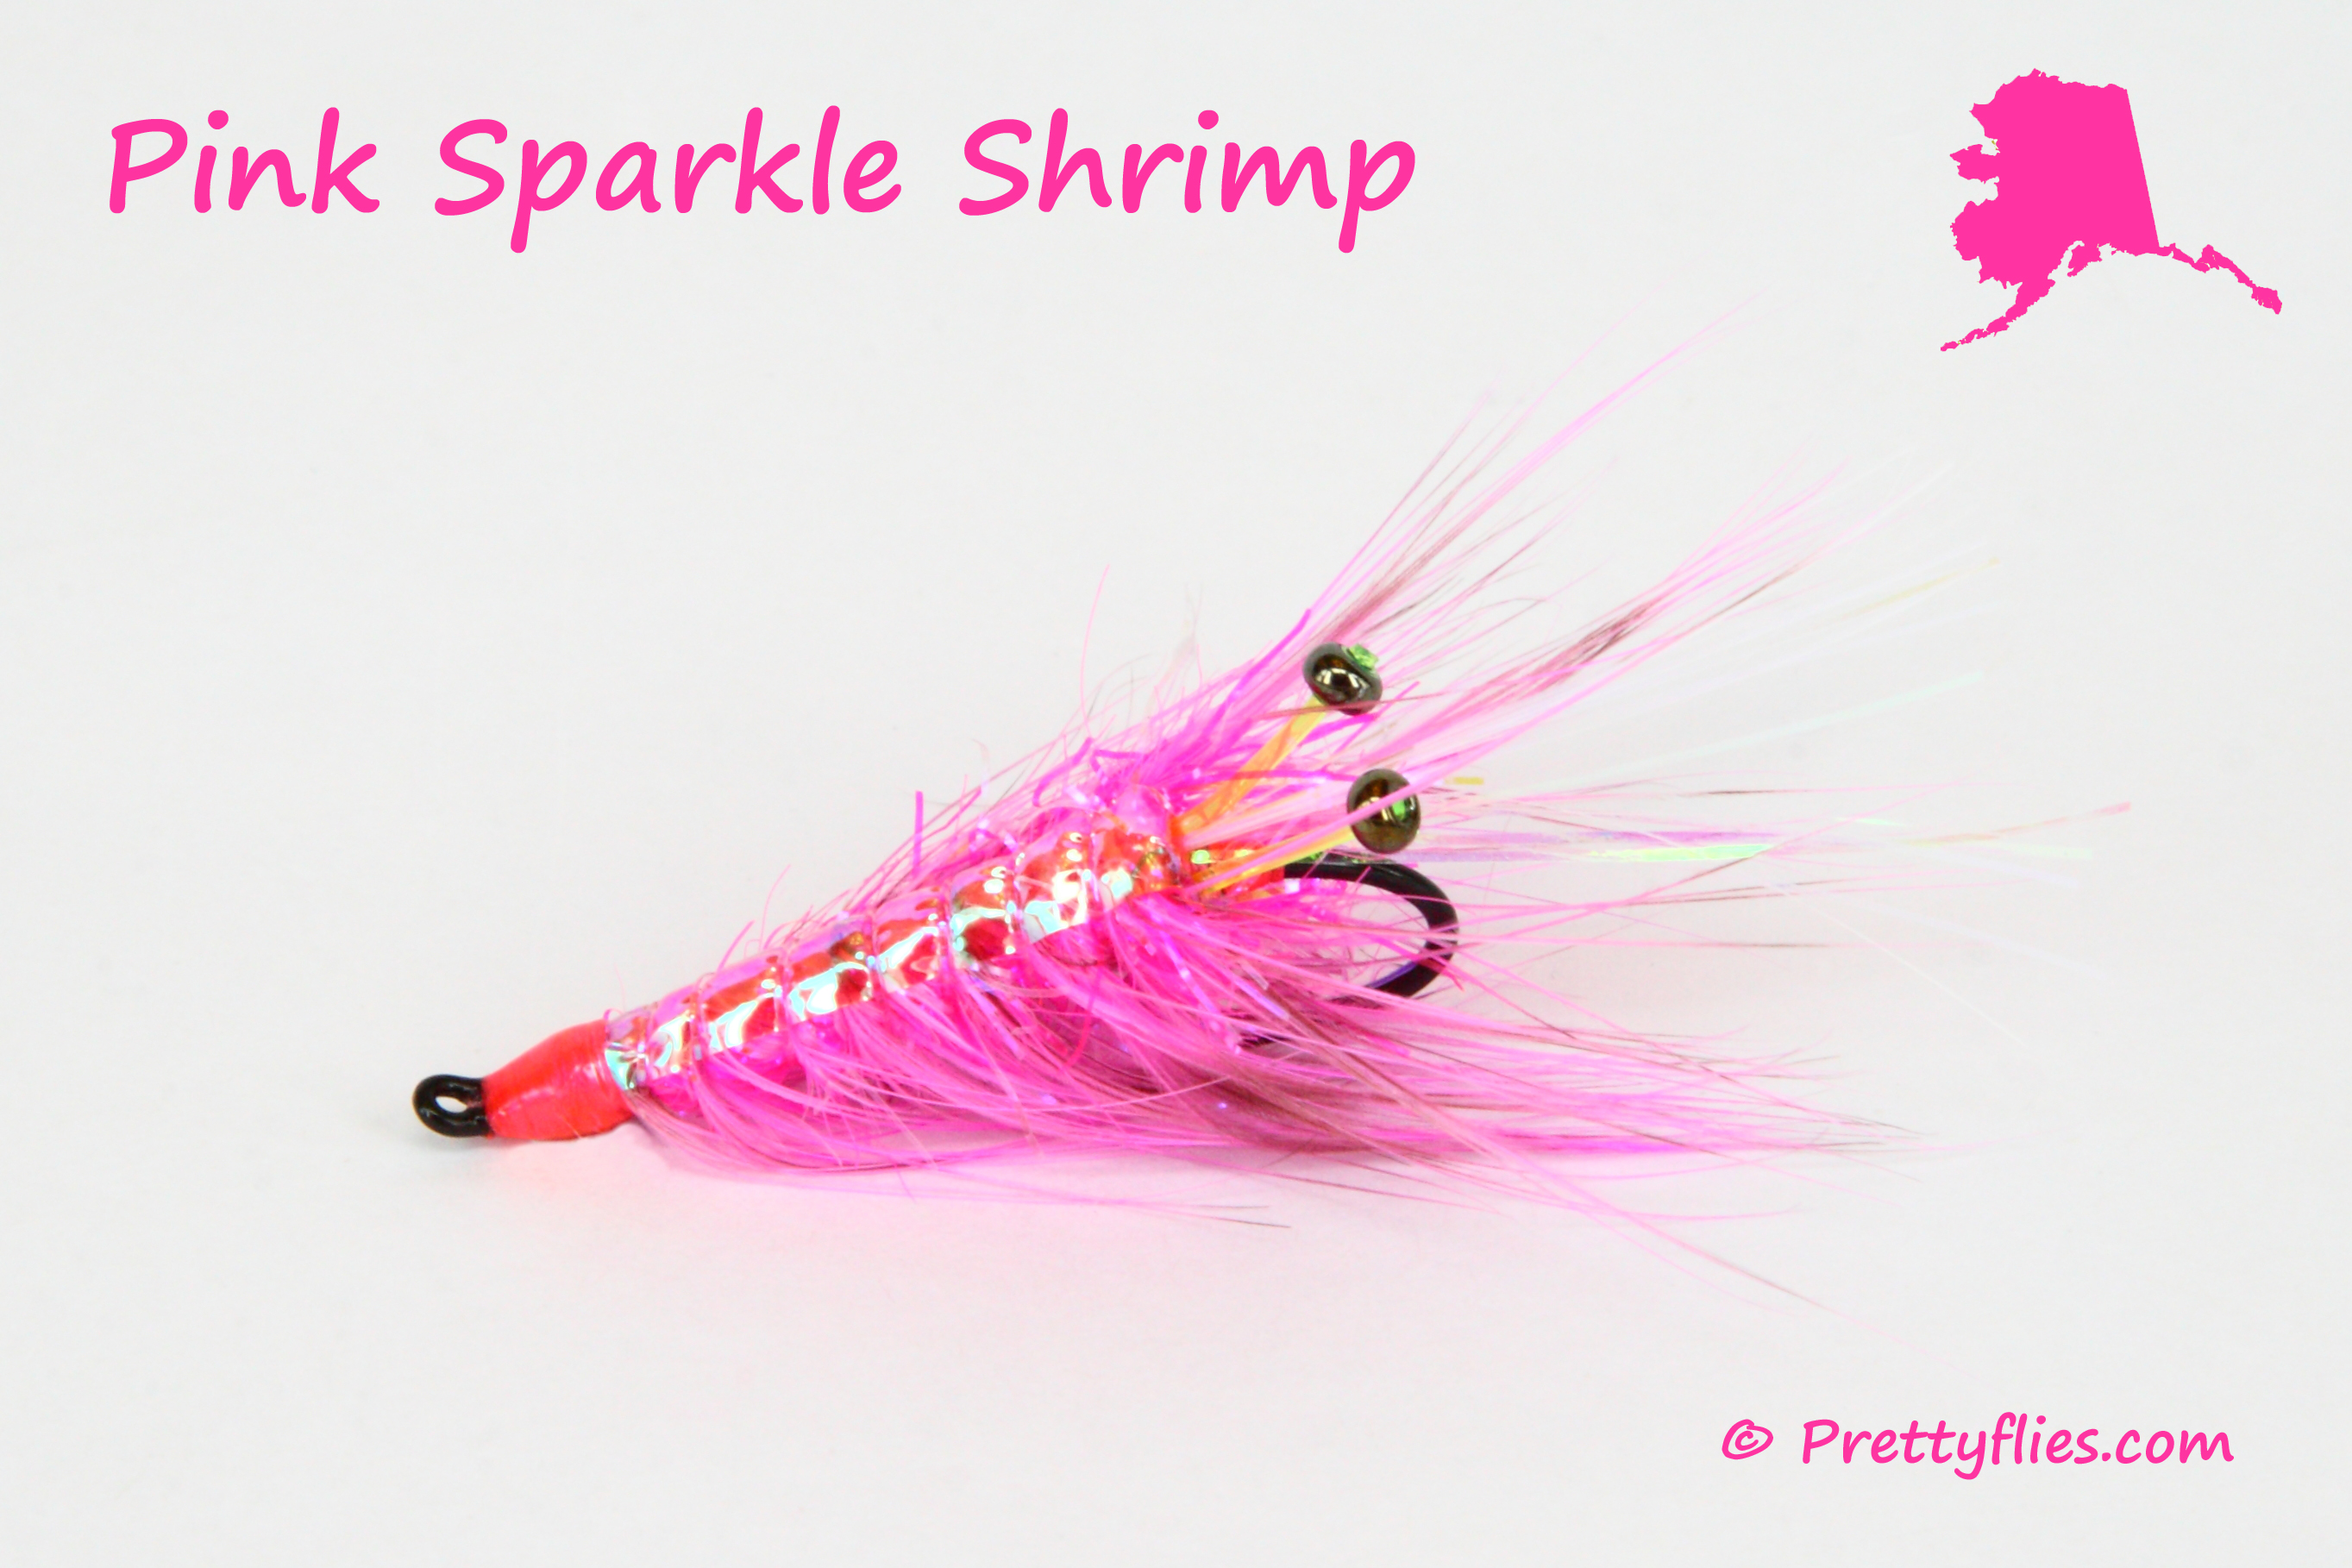 Pink Sparkle Shrimp.jpg